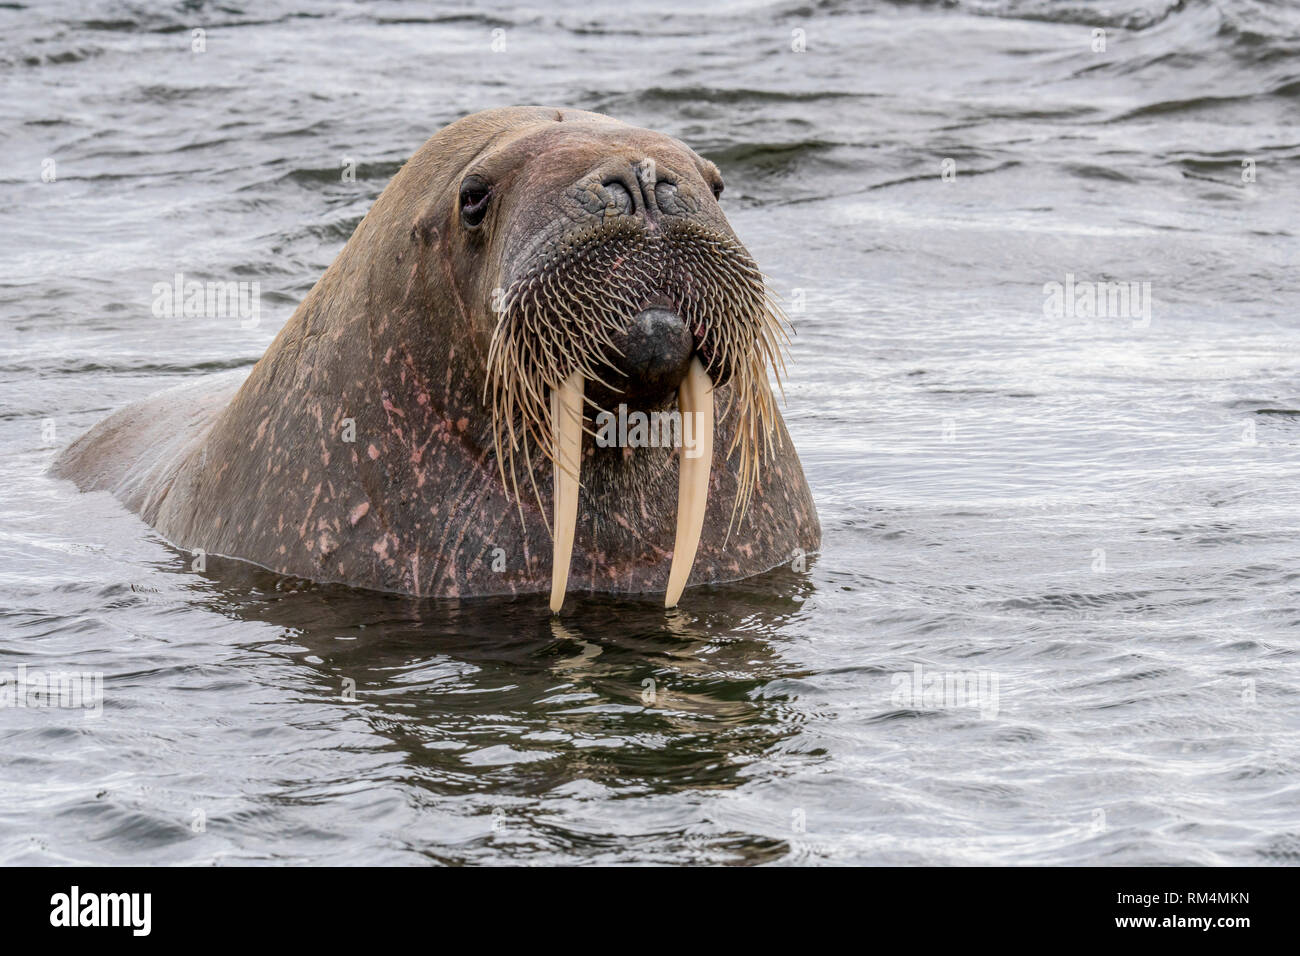 Atlantic walrus (Odobenus rosmarus rosmarus). This large, gregarious relative of the seal has tusks that can reach a metre in length. Both the male (b - Stock Image